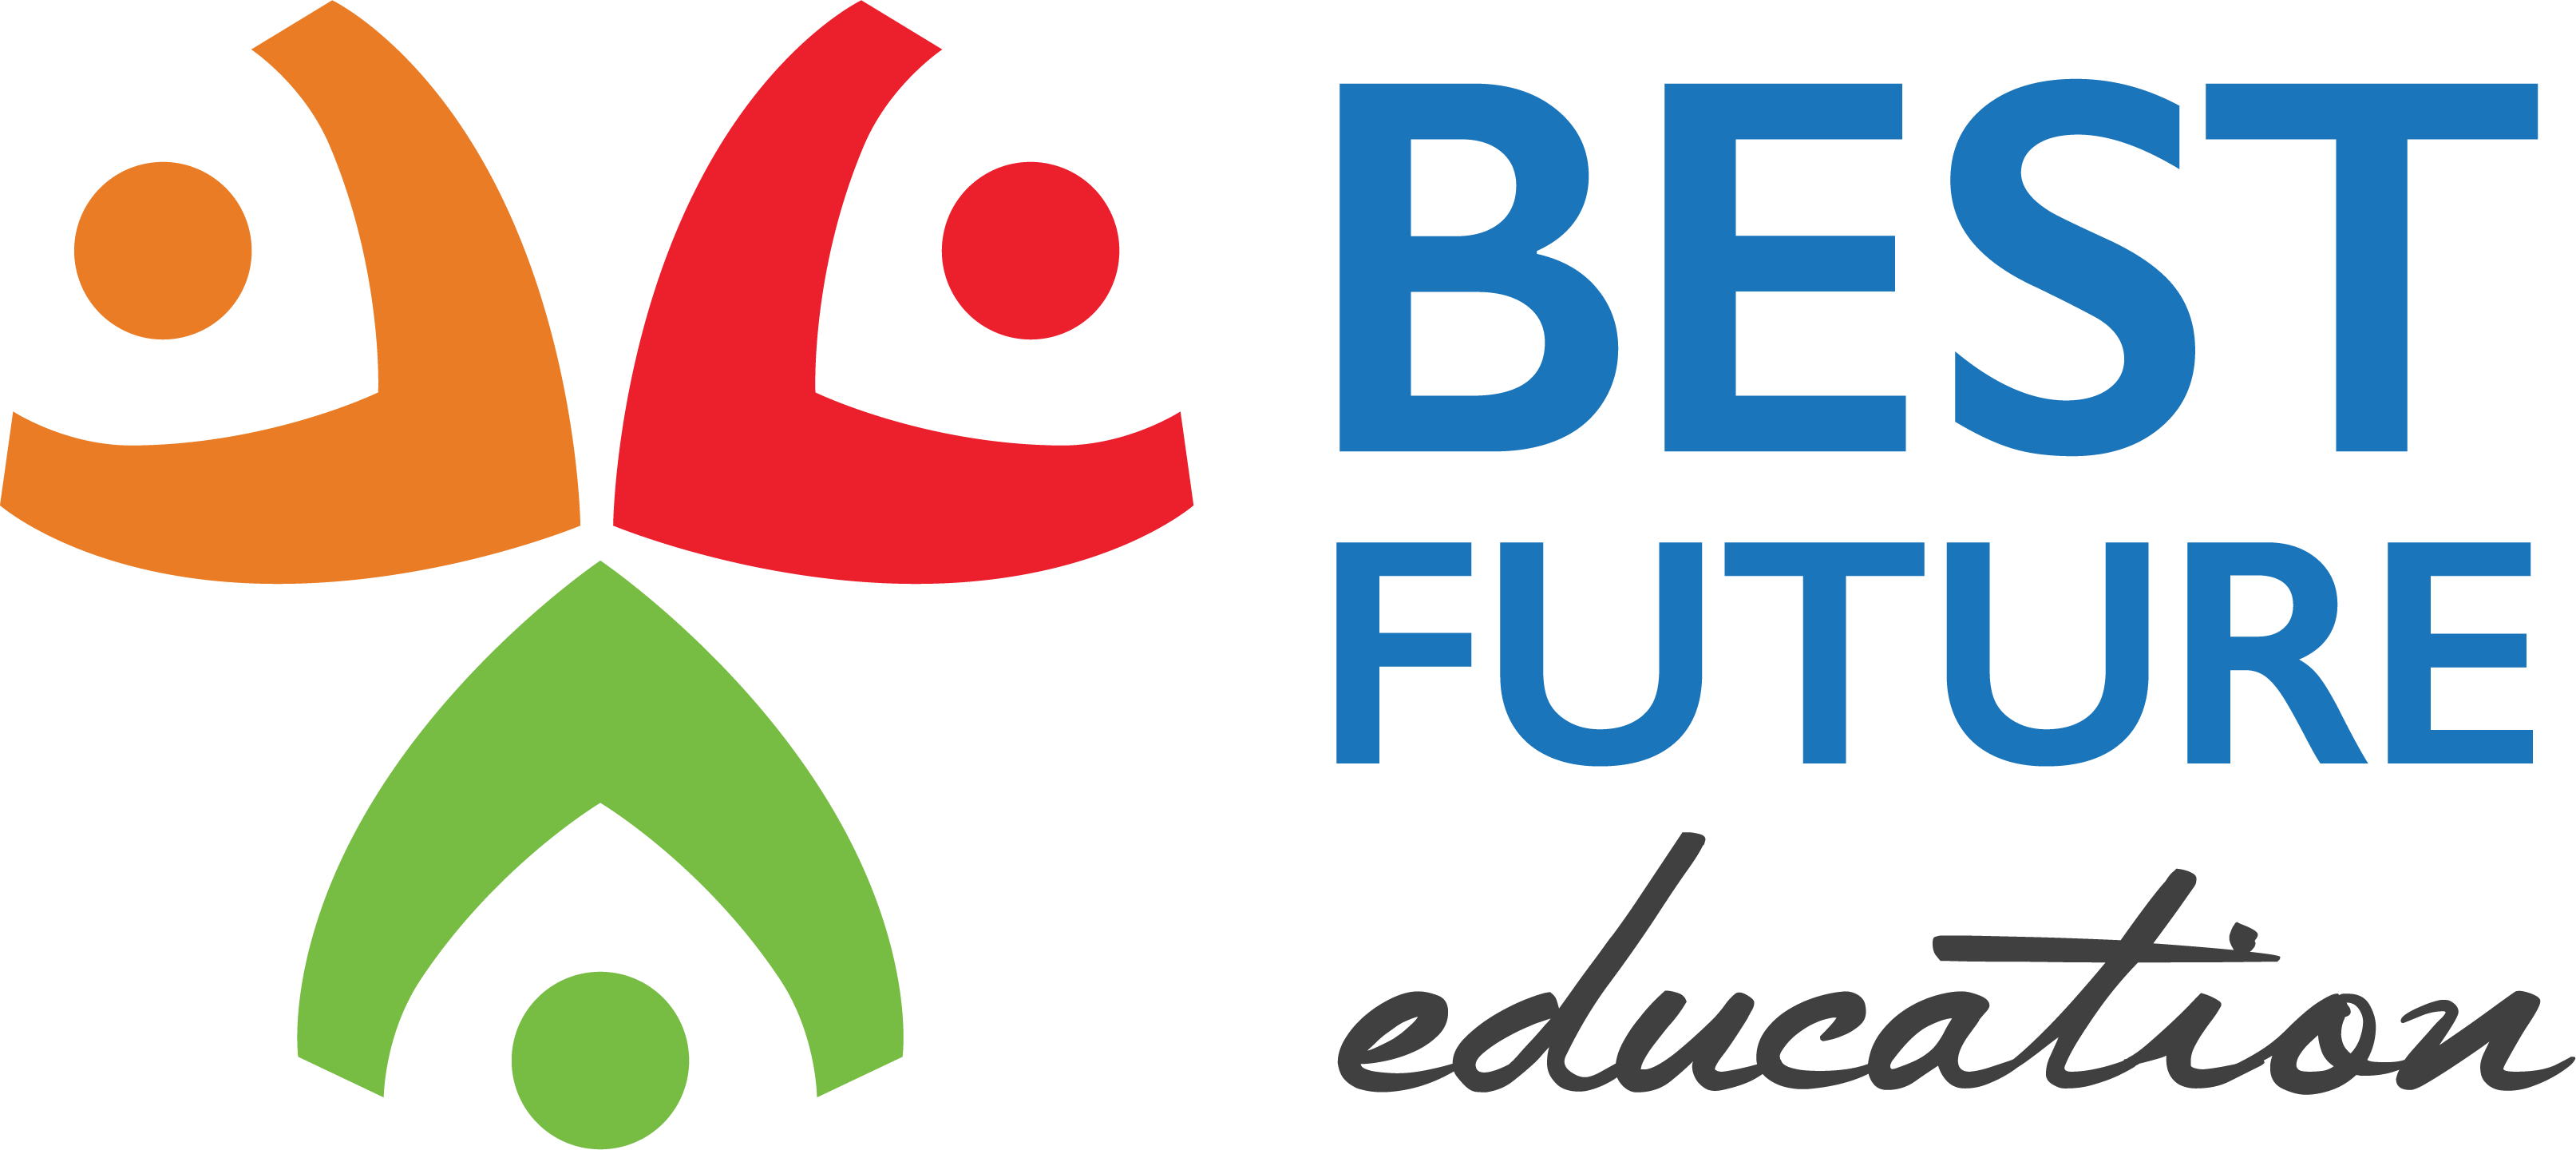 Future education png. Home best educationcomprehensive and